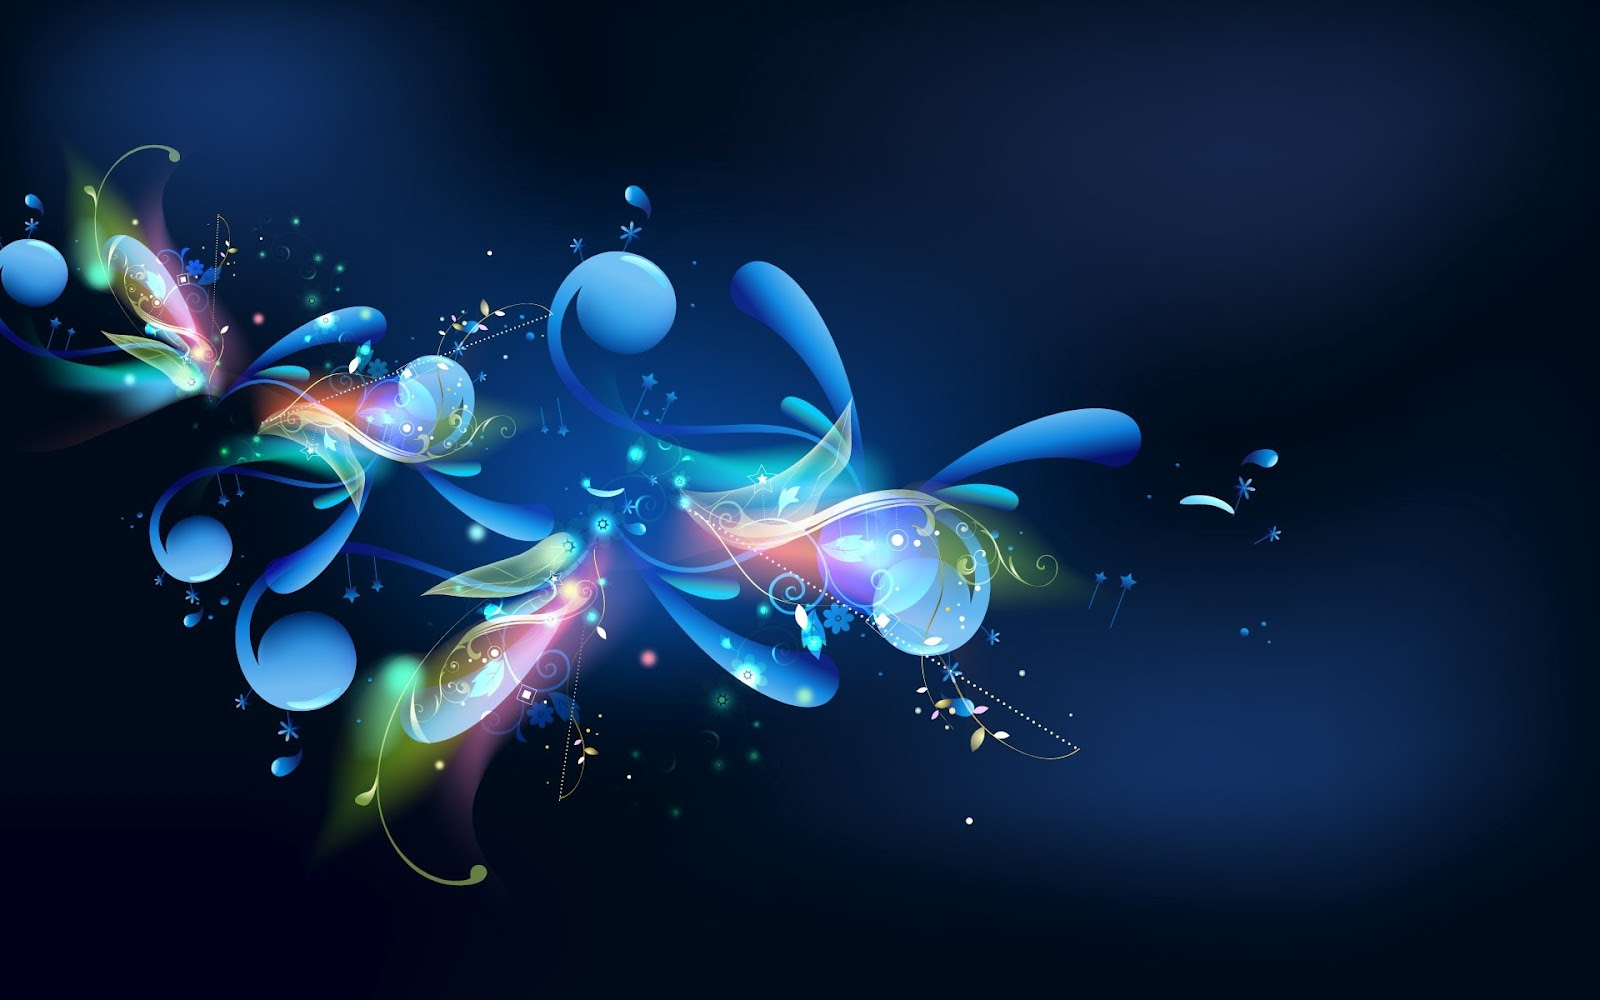 Free Live Wallpapers For Windows 8 Like Wallpapers